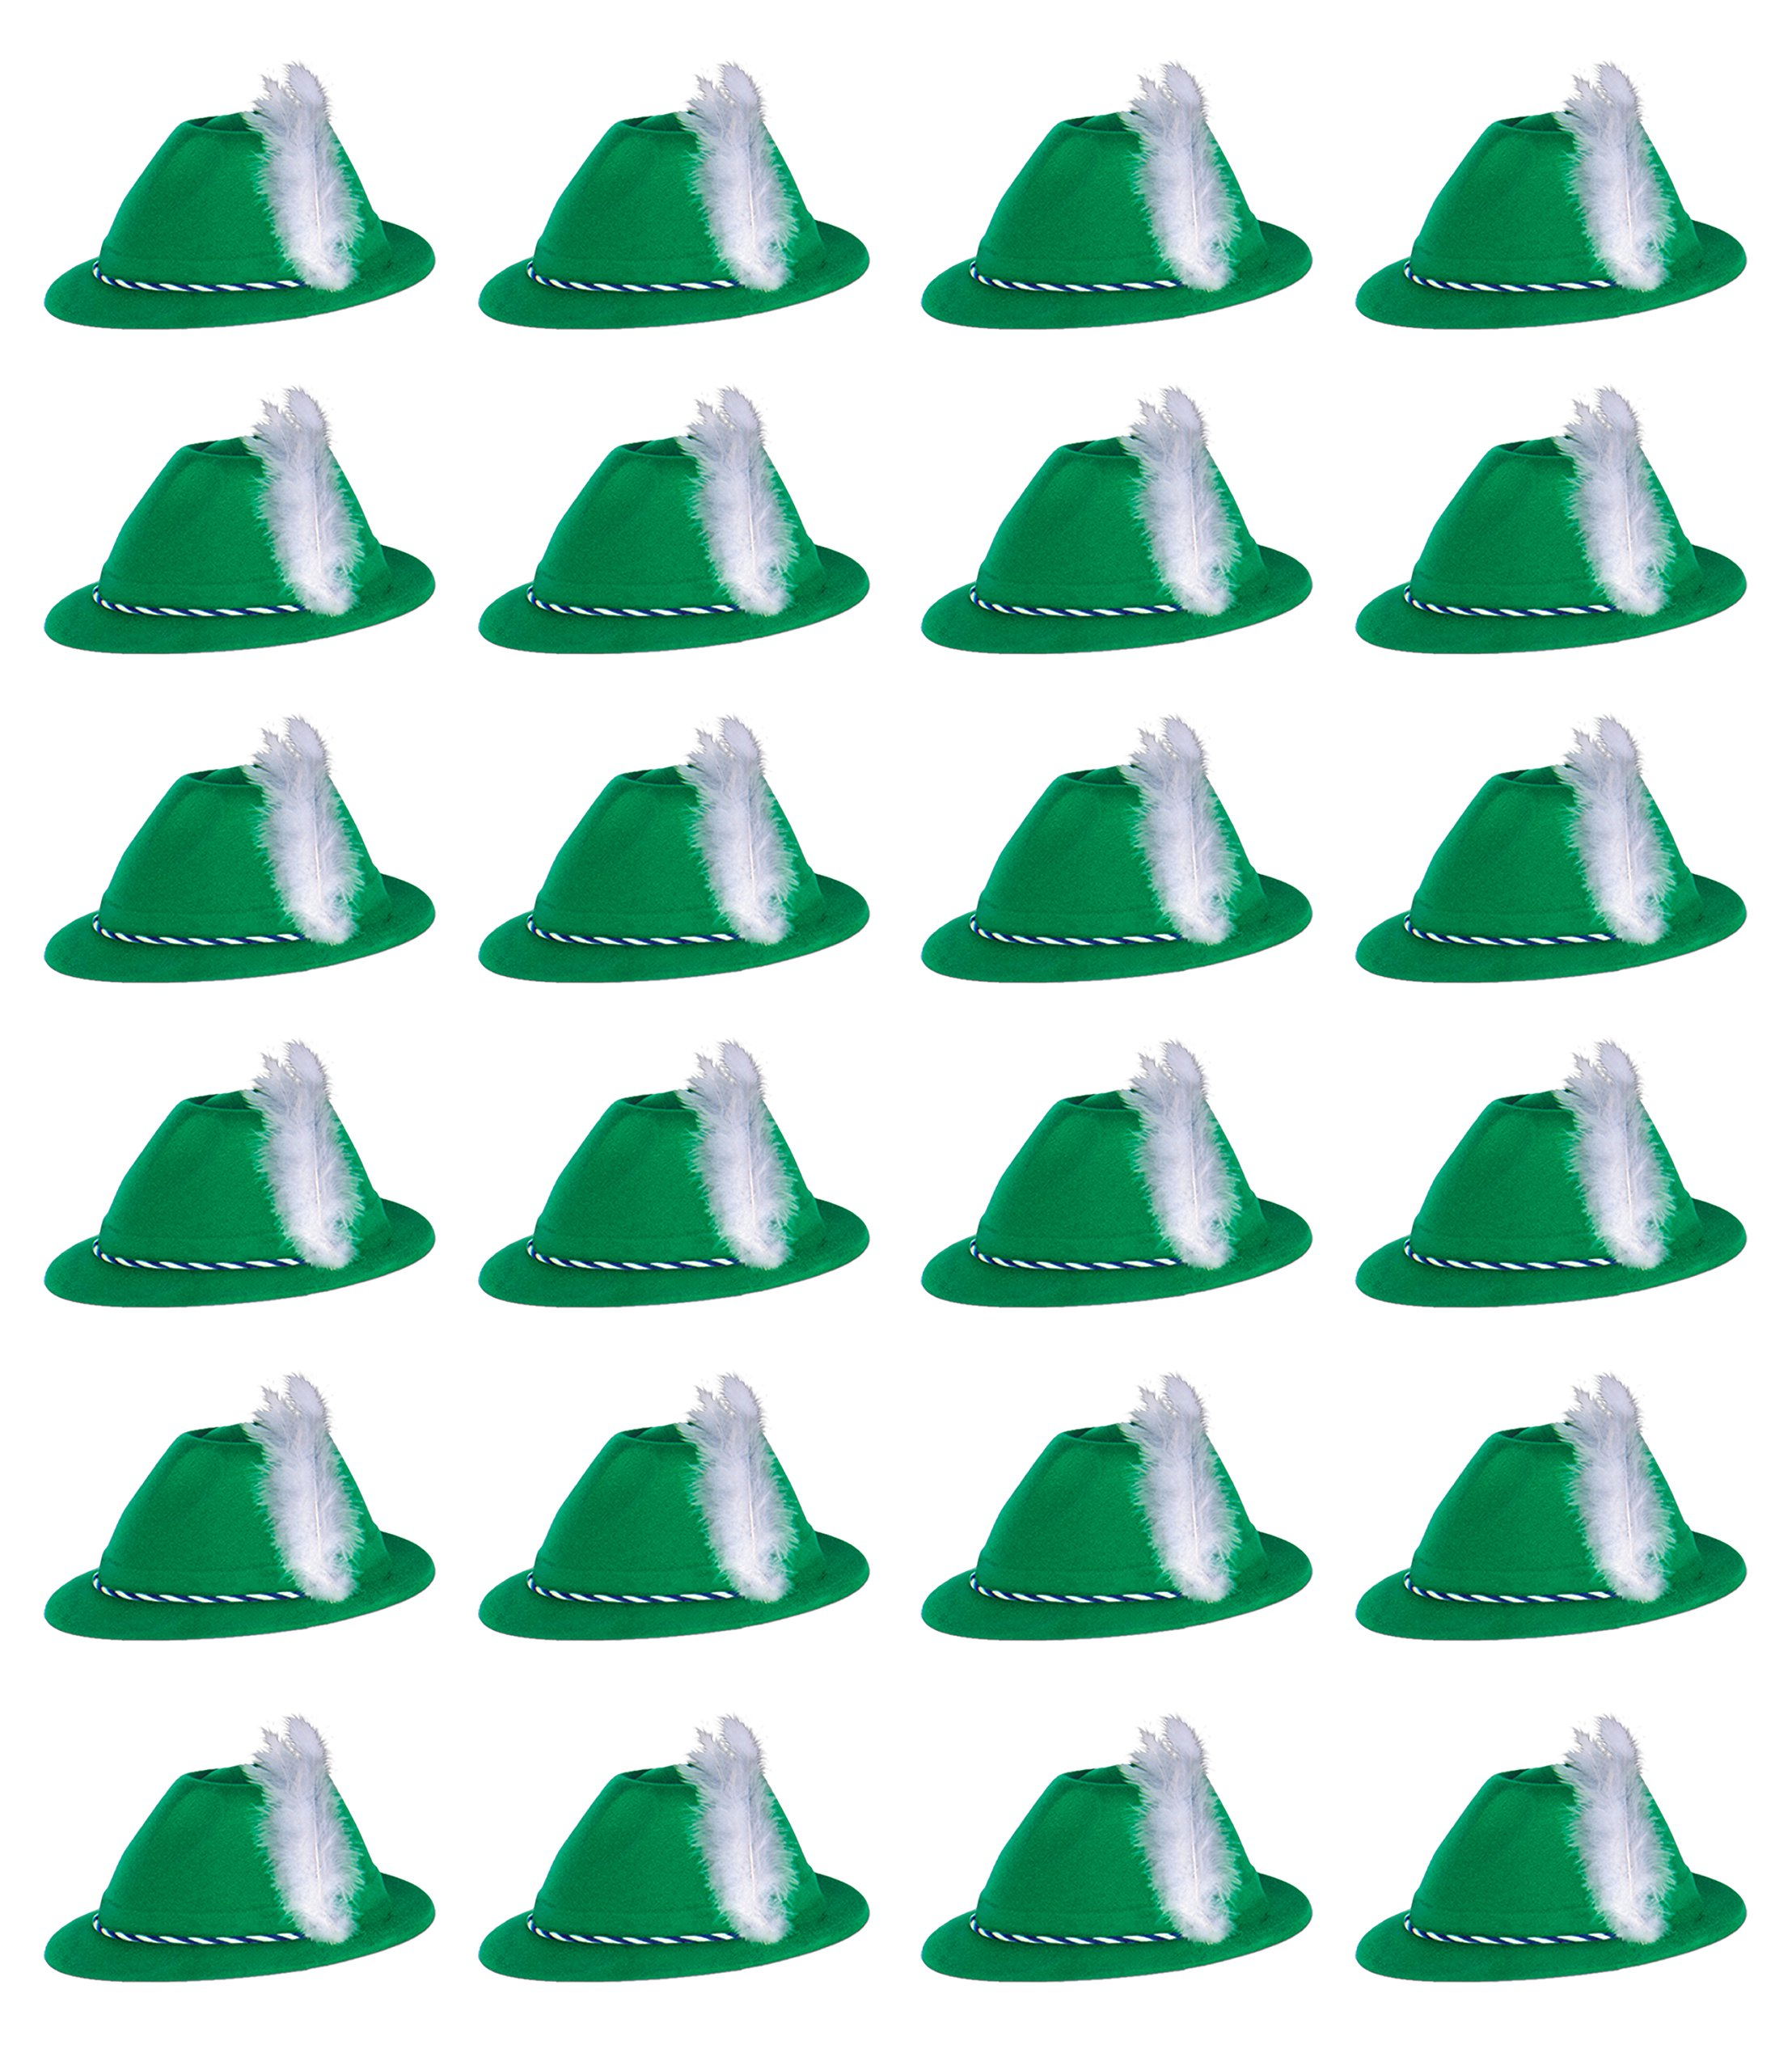 Beistle 66898 24-Pack Velour Tyrolean Hats, Green